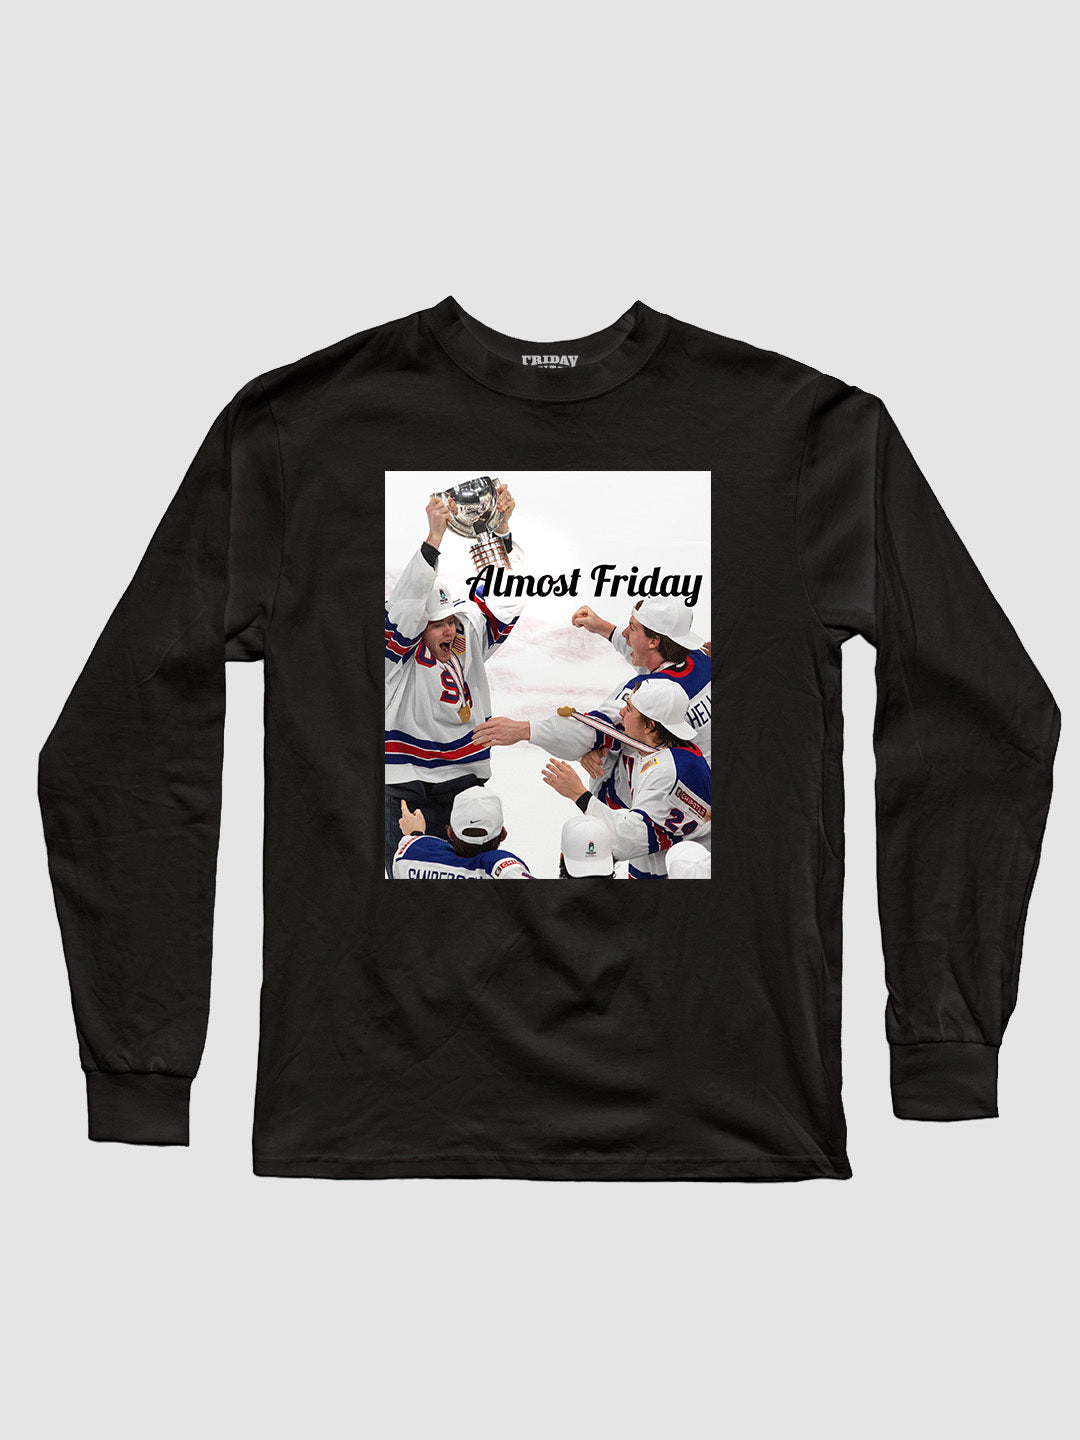 Almost Friday Gold Longsleeve Shirt